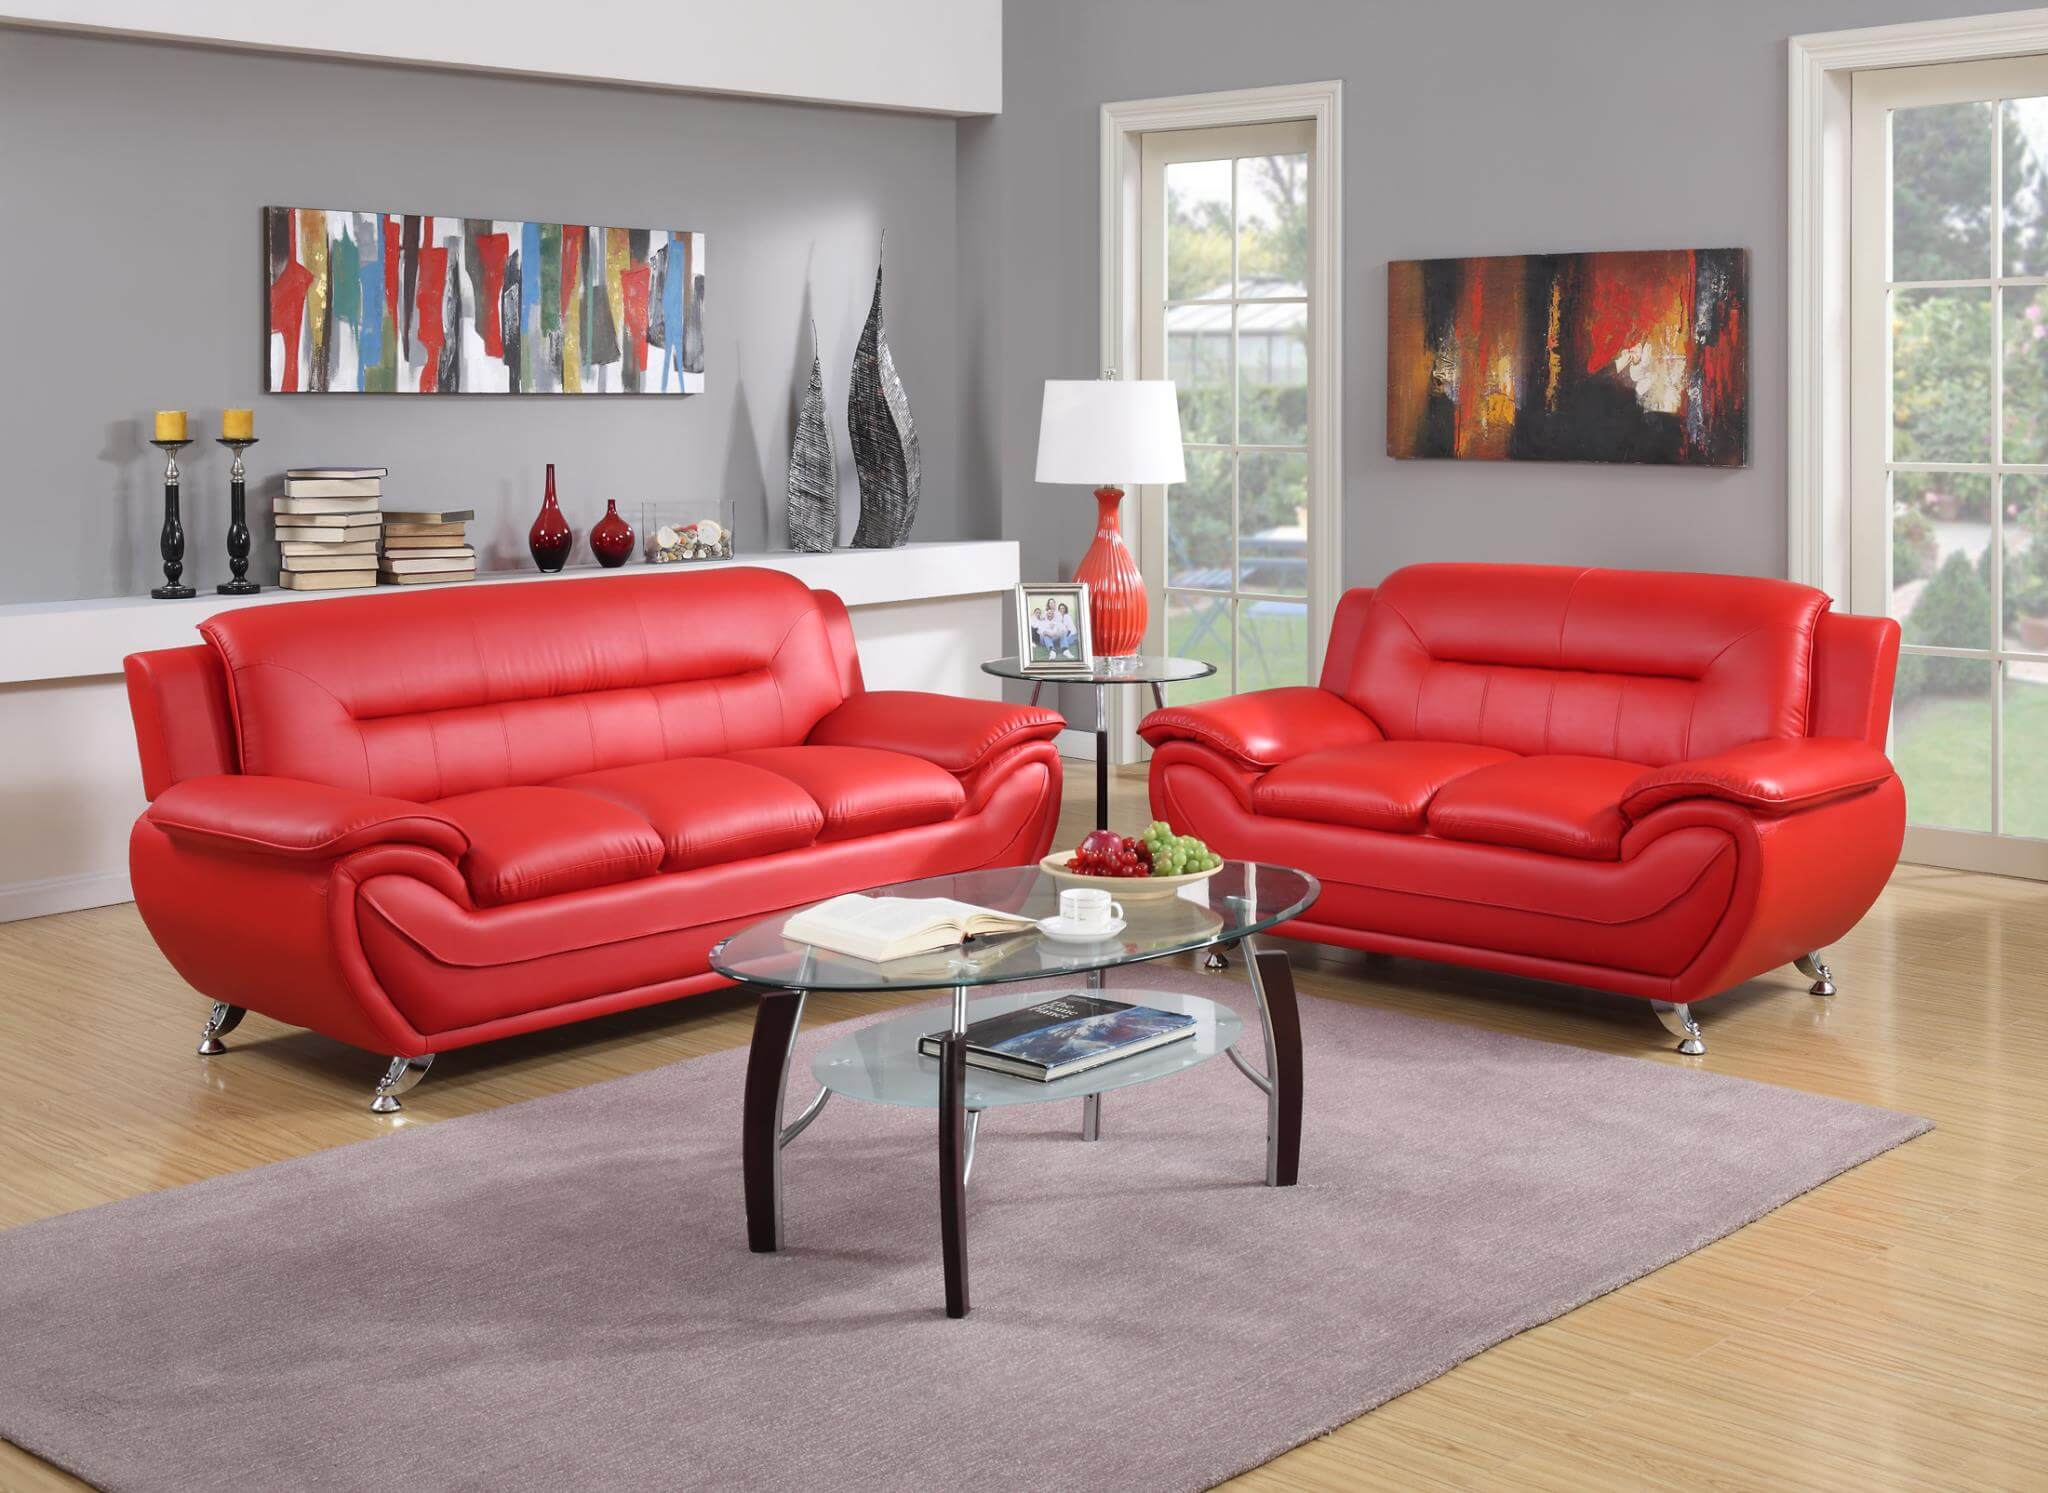 2703 Red Contemporary Living Room Set regarding 11 Genius Initiatives of How to Improve Red Living Room Sets